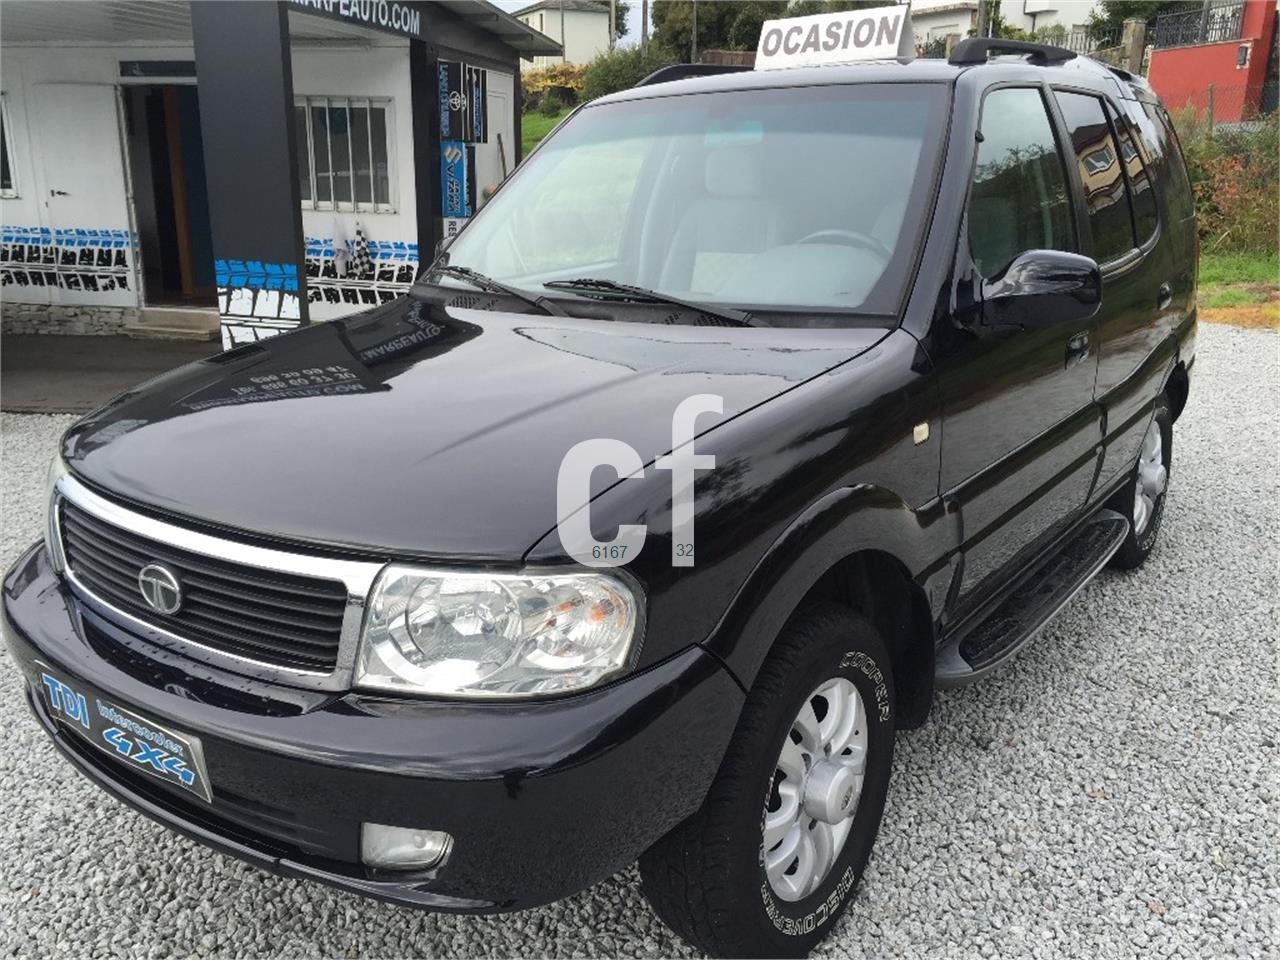 TATA Grand Safari 2007 de ocasión